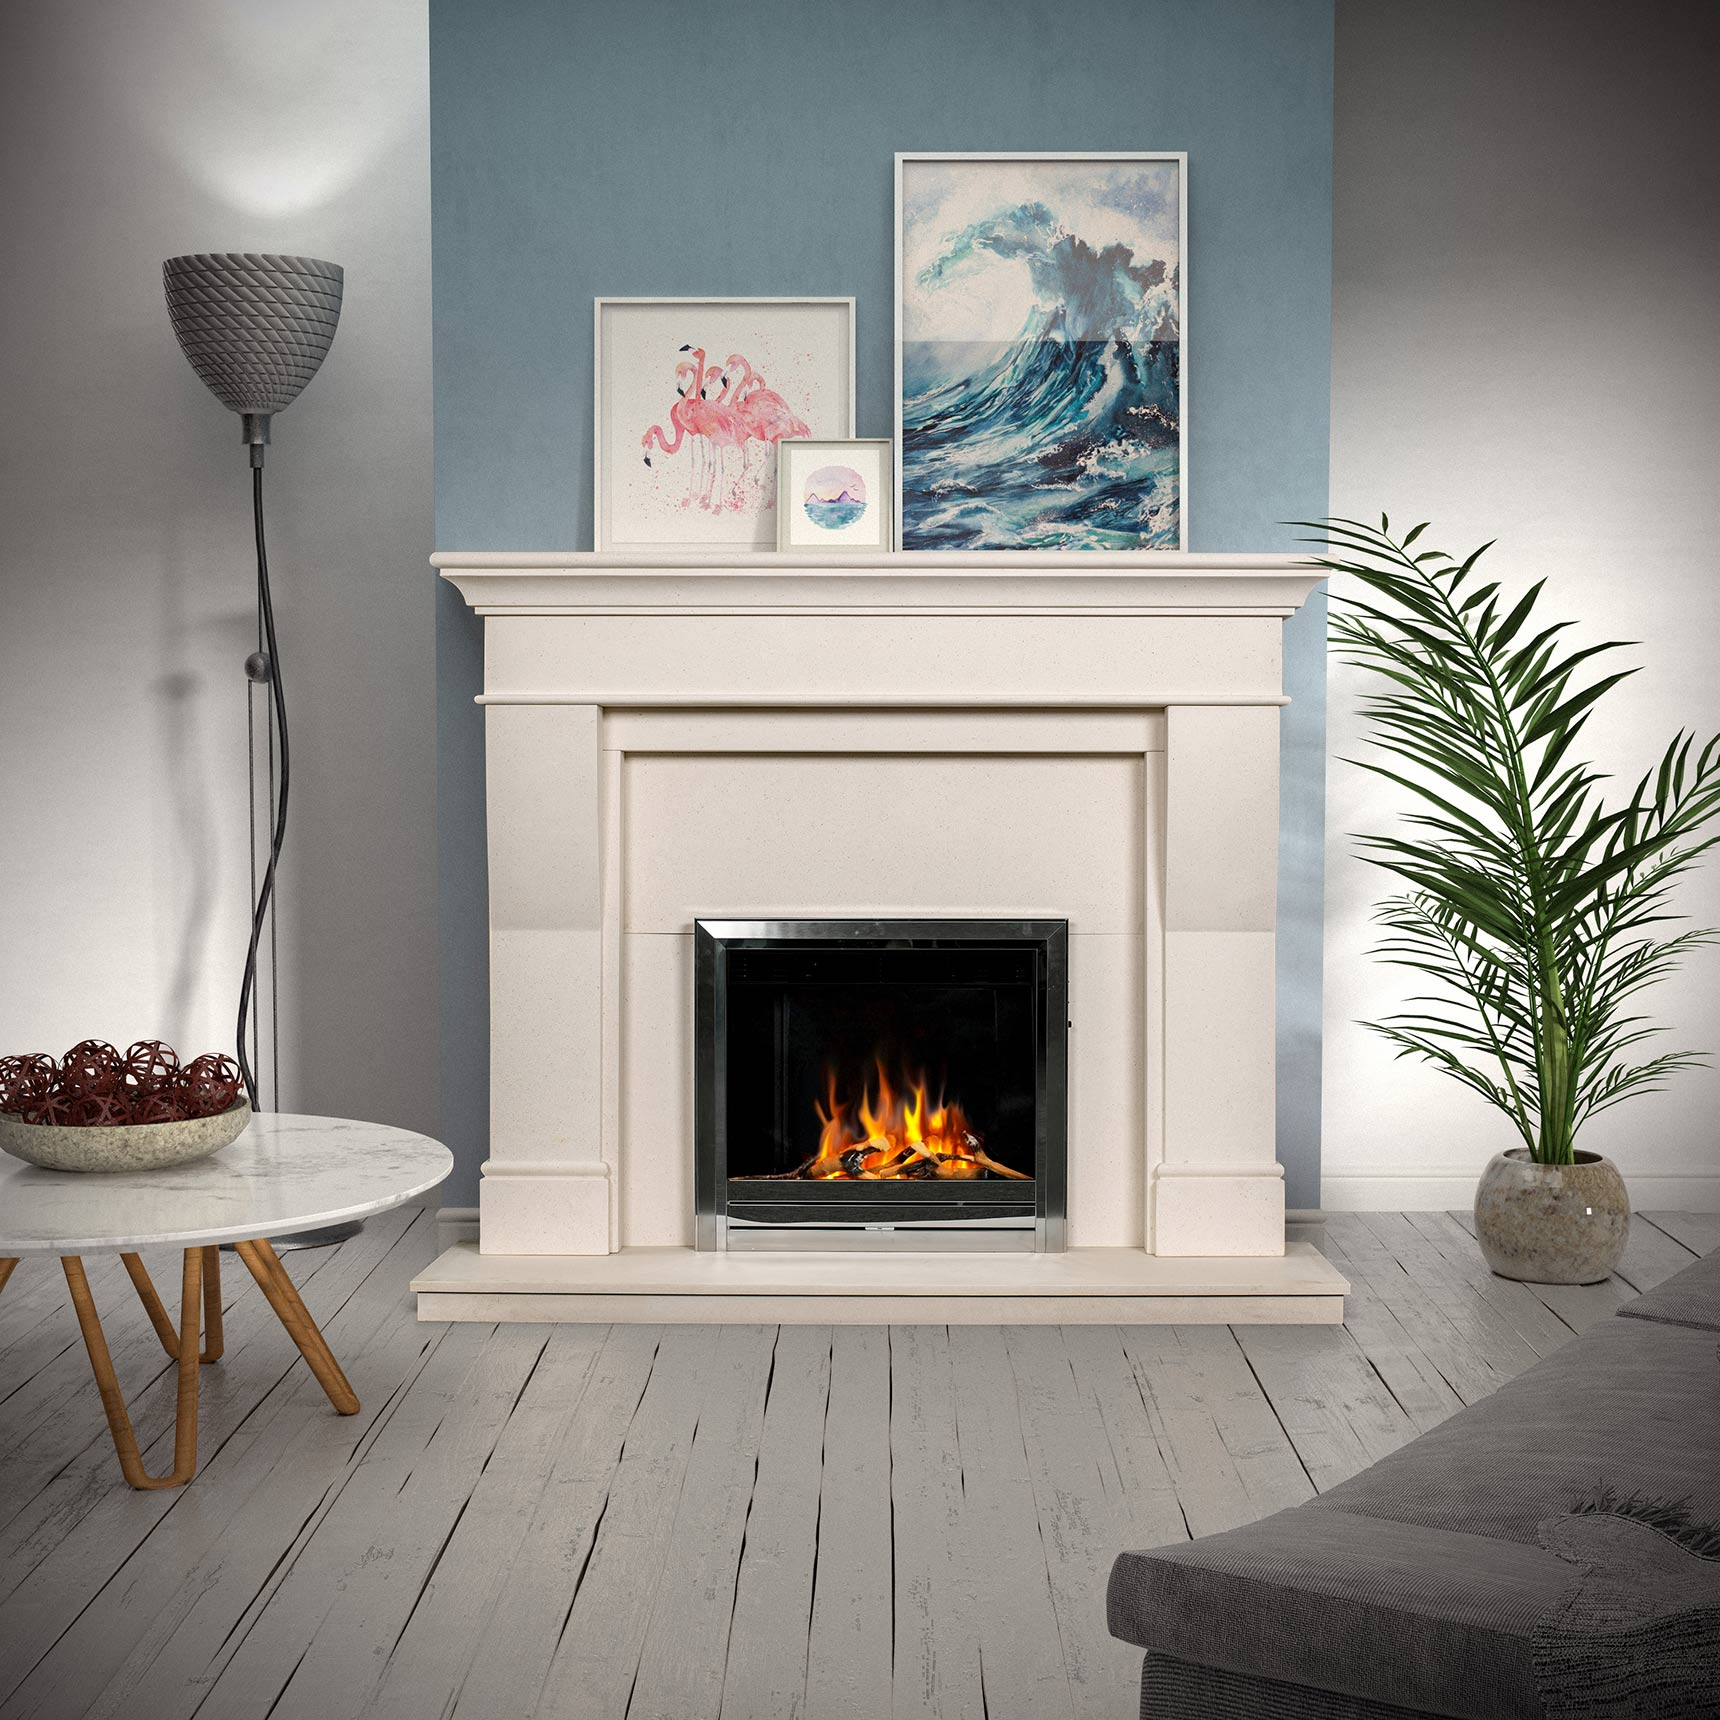 Barry's Fireplaces & Stoves